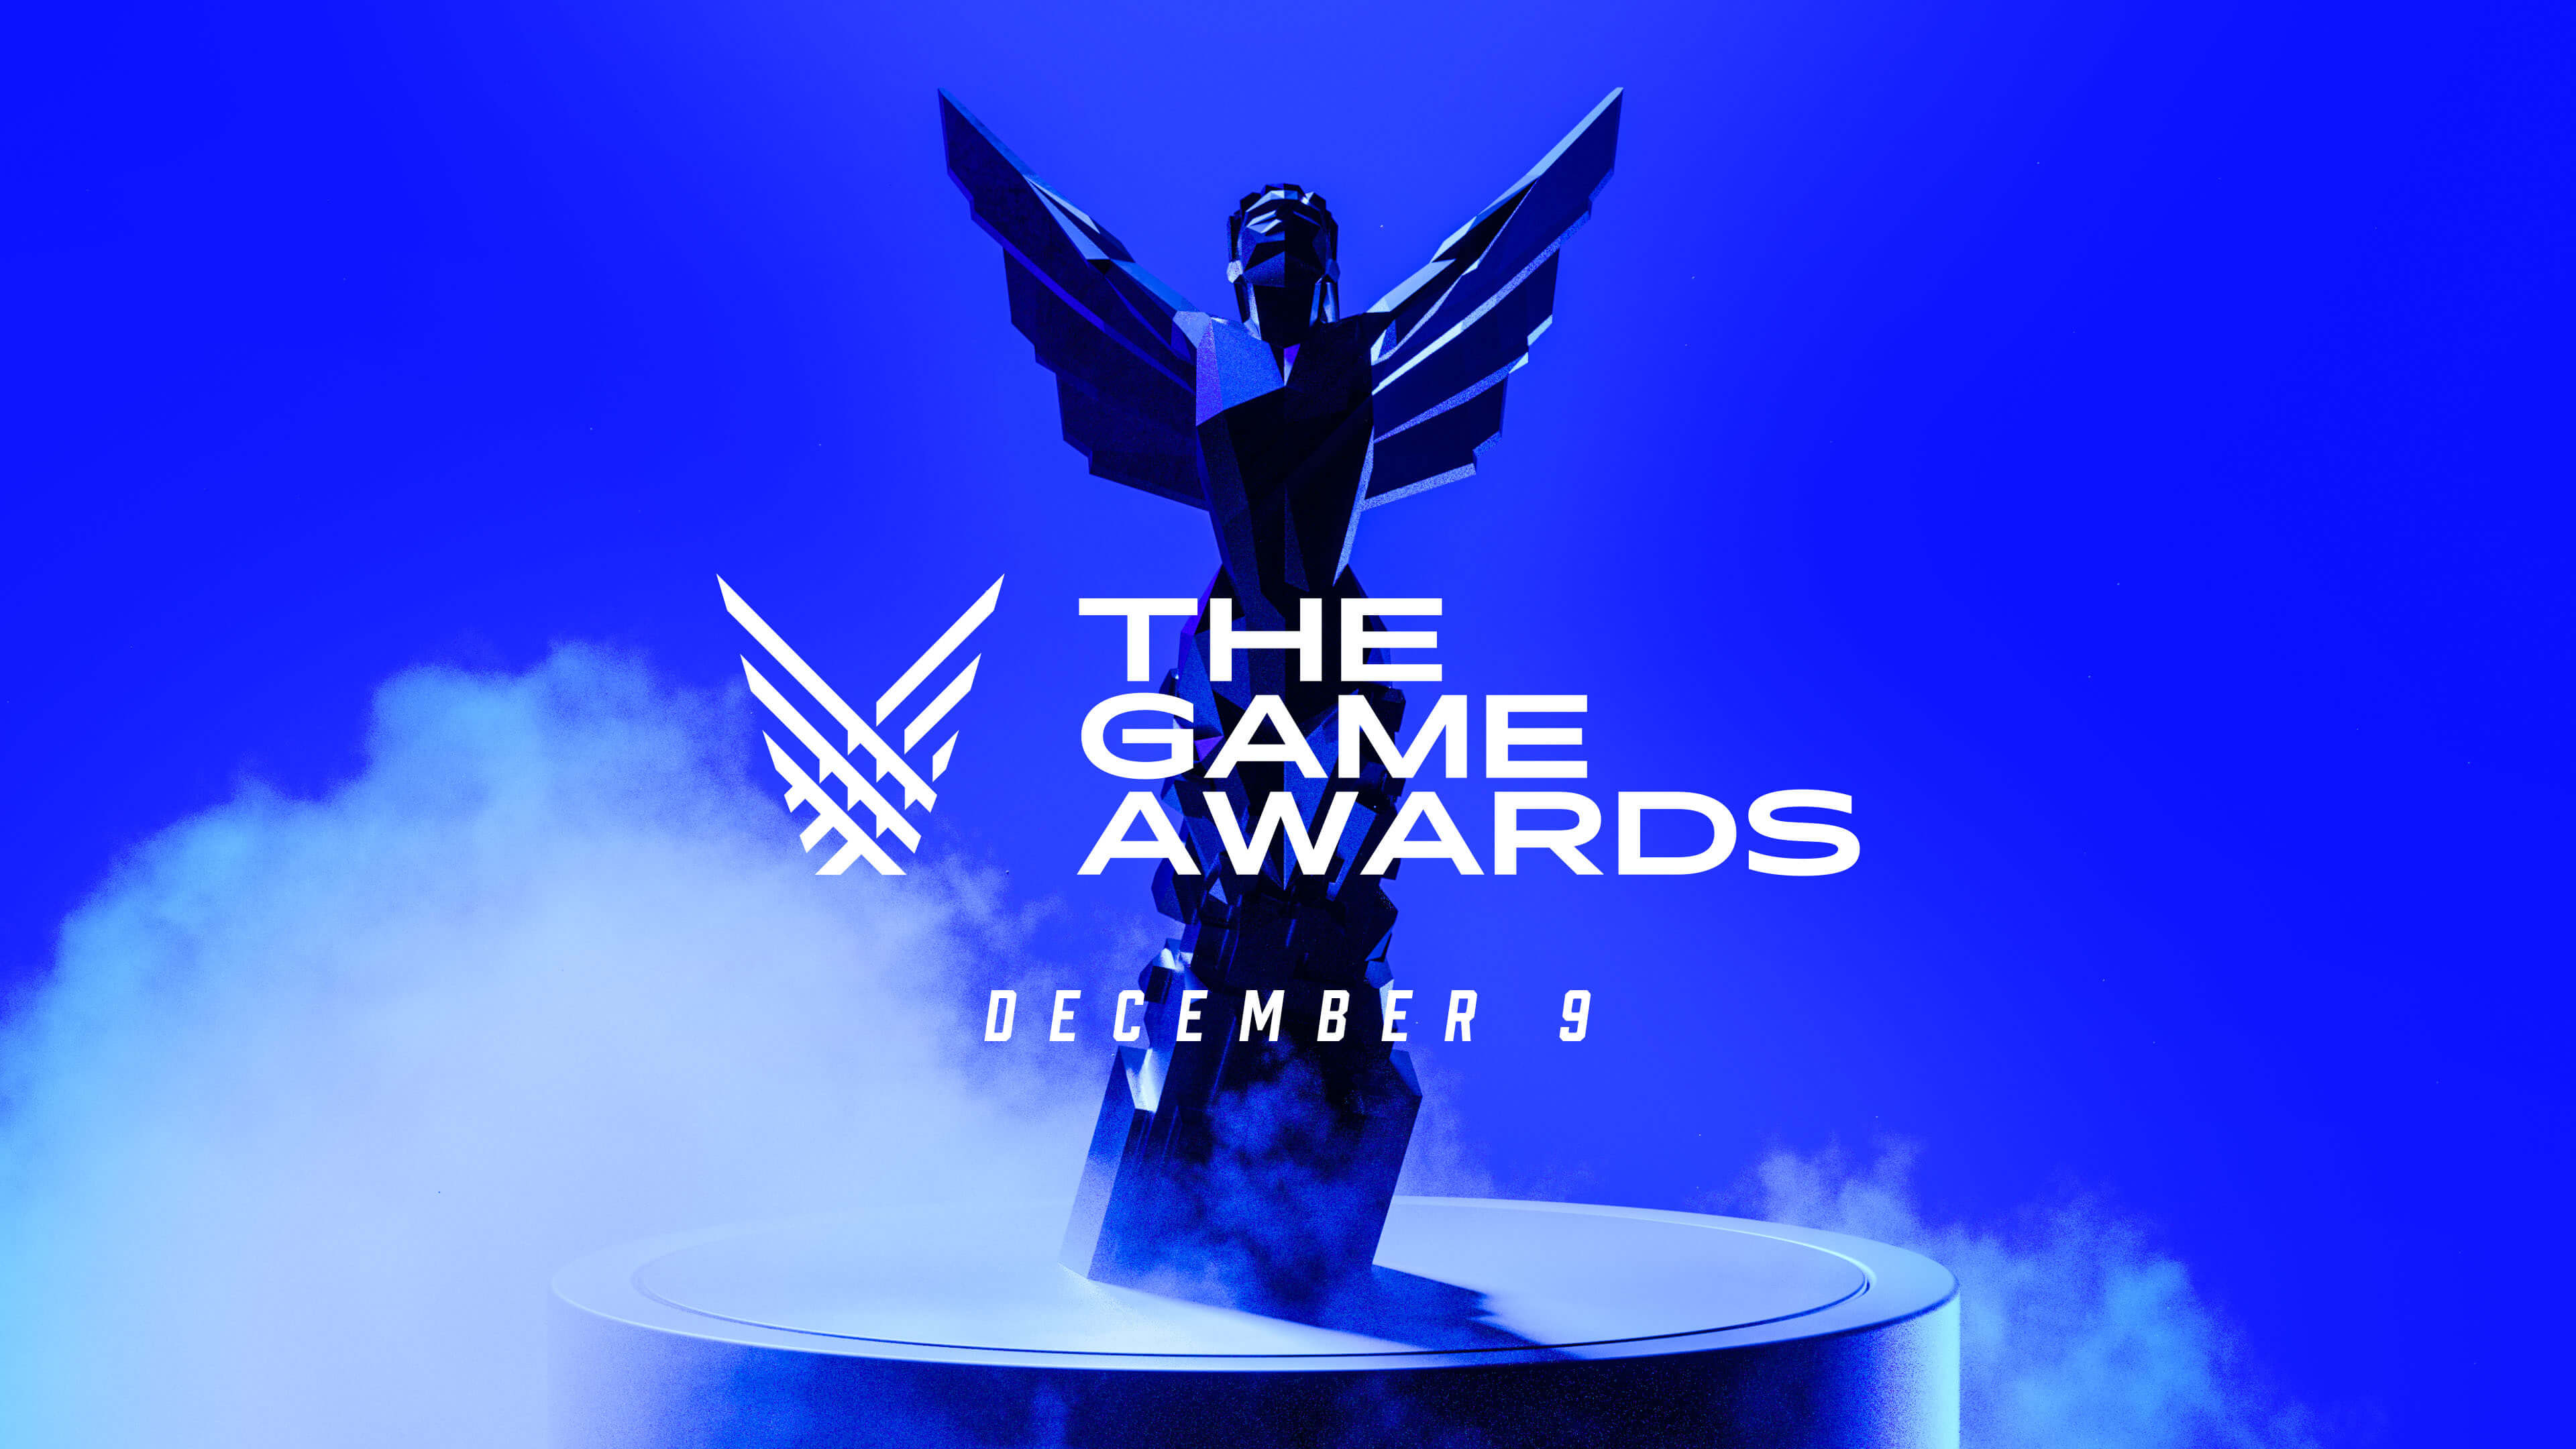 Games Awards 2020.The Game Awards